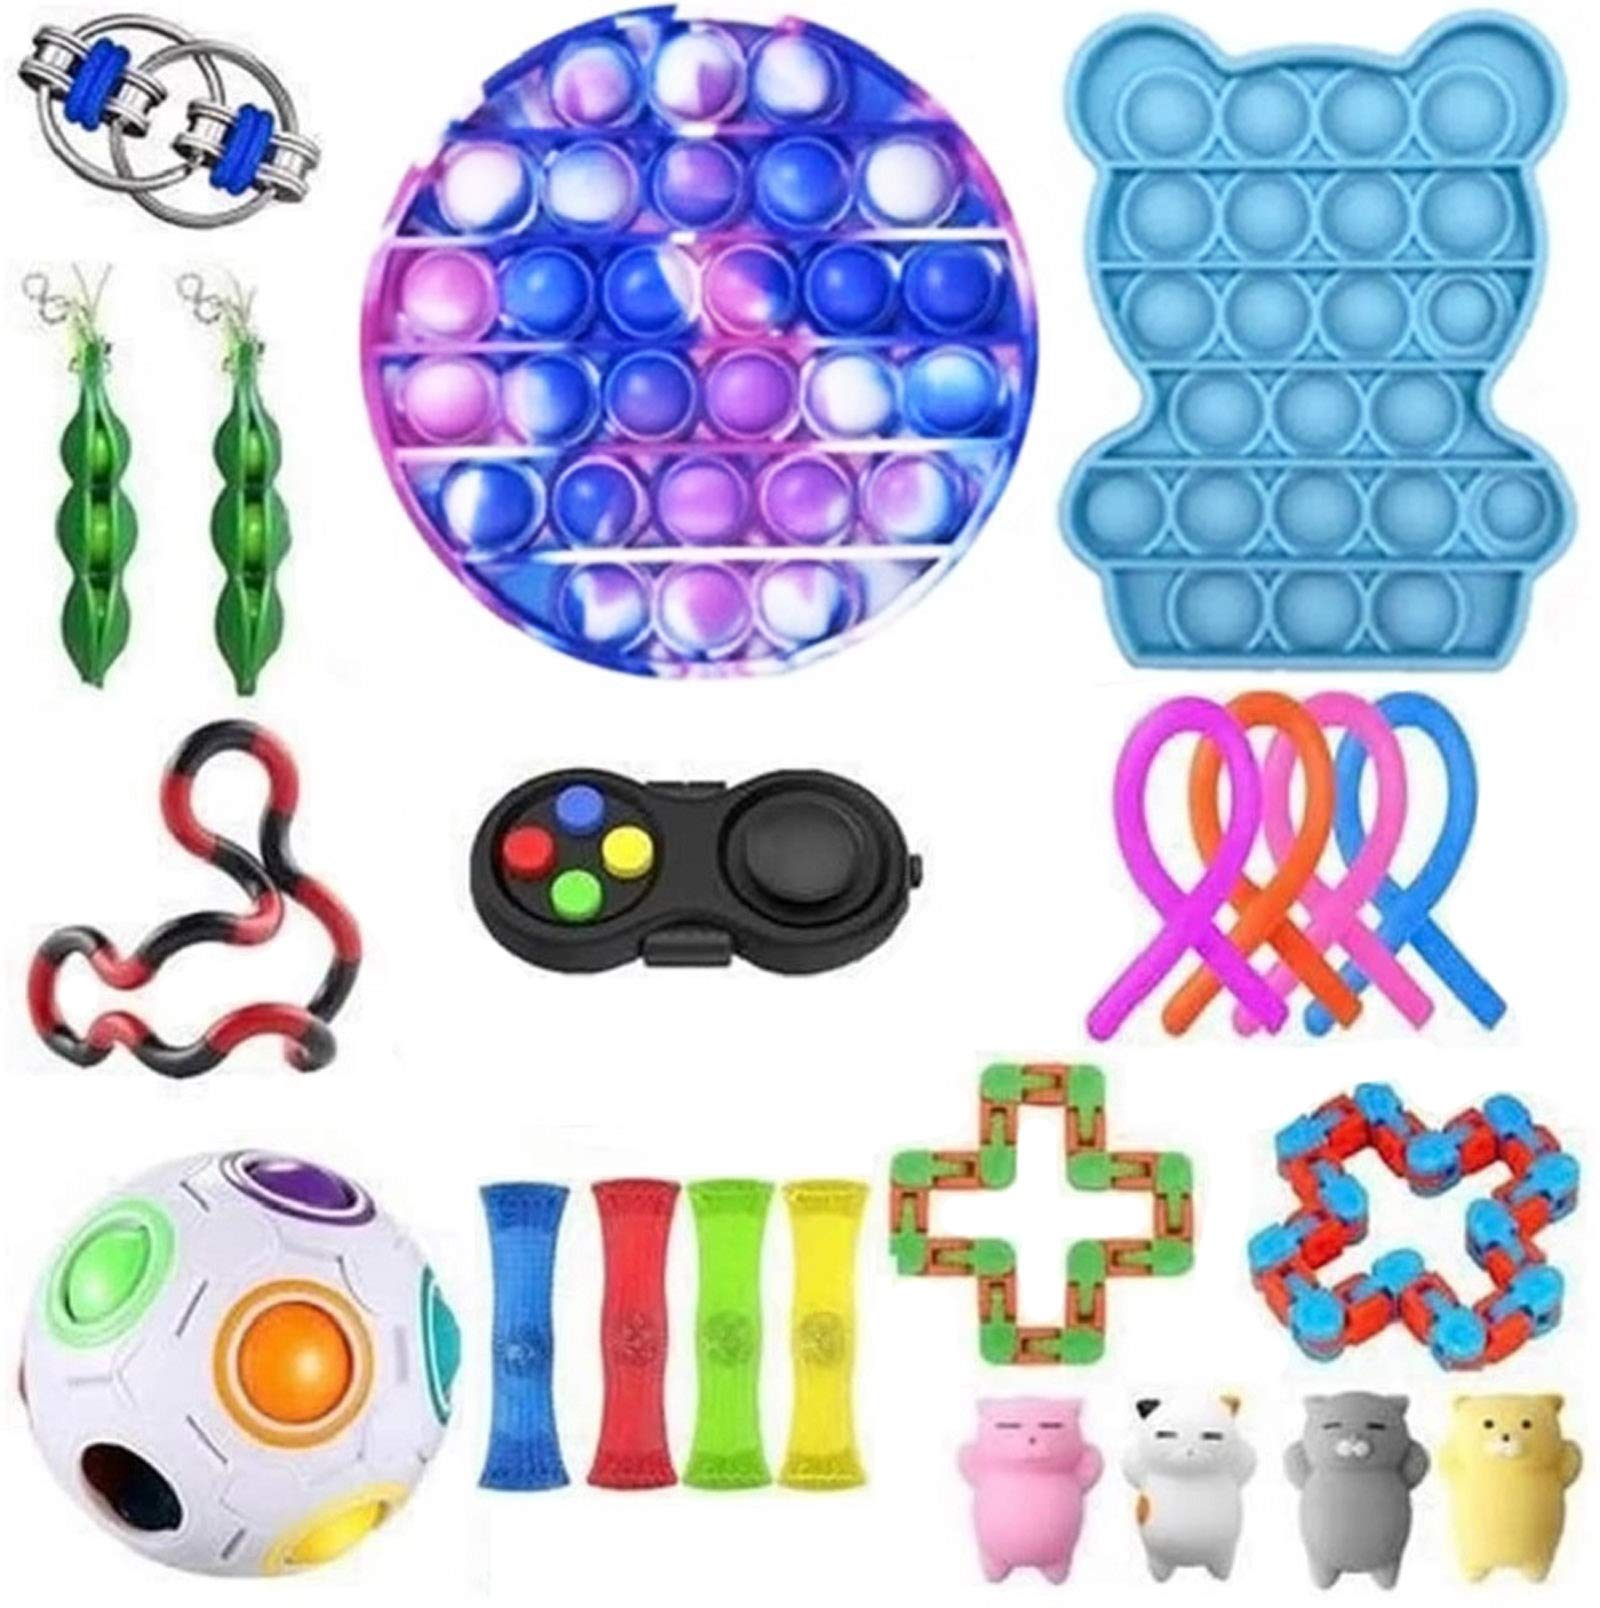 Komoo Fidget Toys Pack, Sensory Fidget Toys with Stress Ball Marble Mesh Push Pop Bubble Fidget Sensory Toy for Kids&Adults (1#)